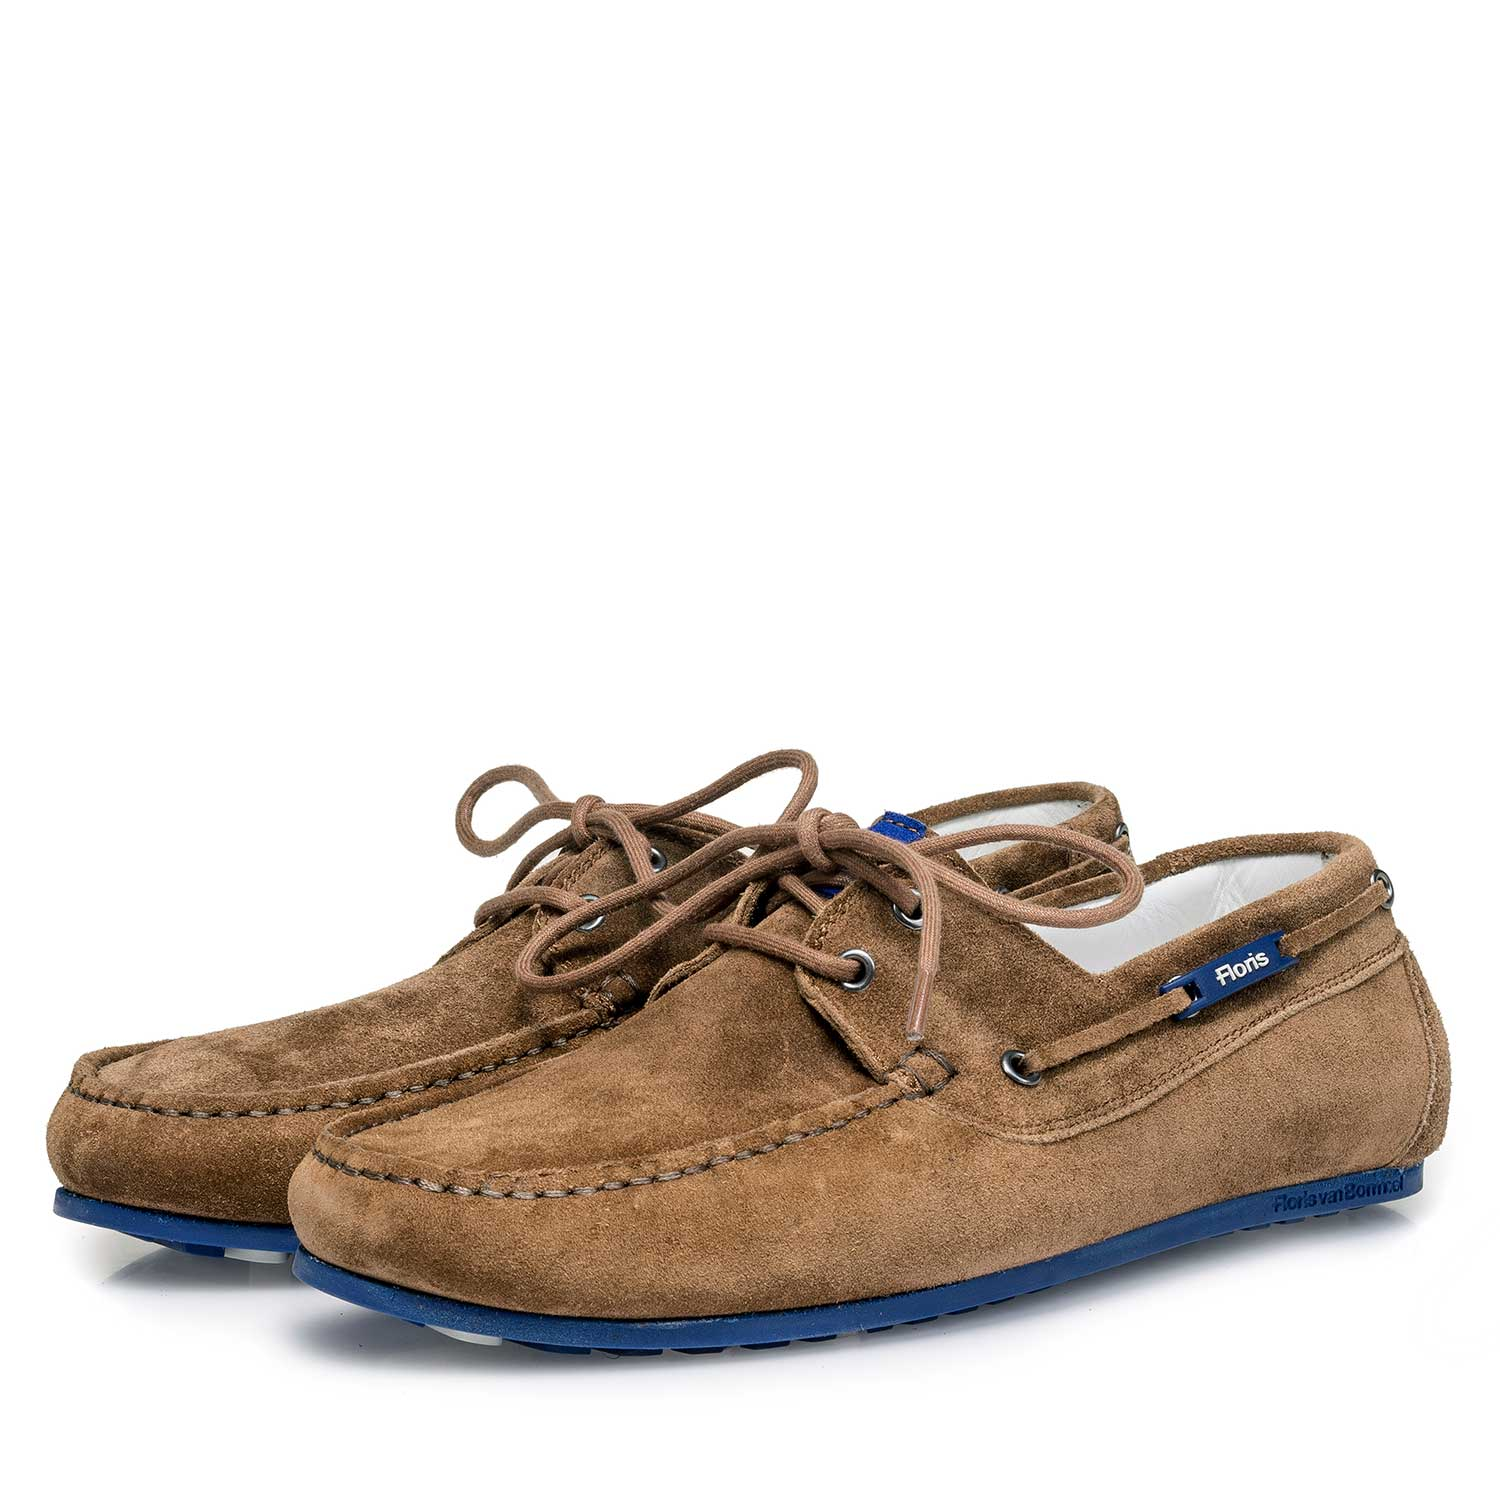 15035/09 - Brown slightly buffed suede leather sailing shoe